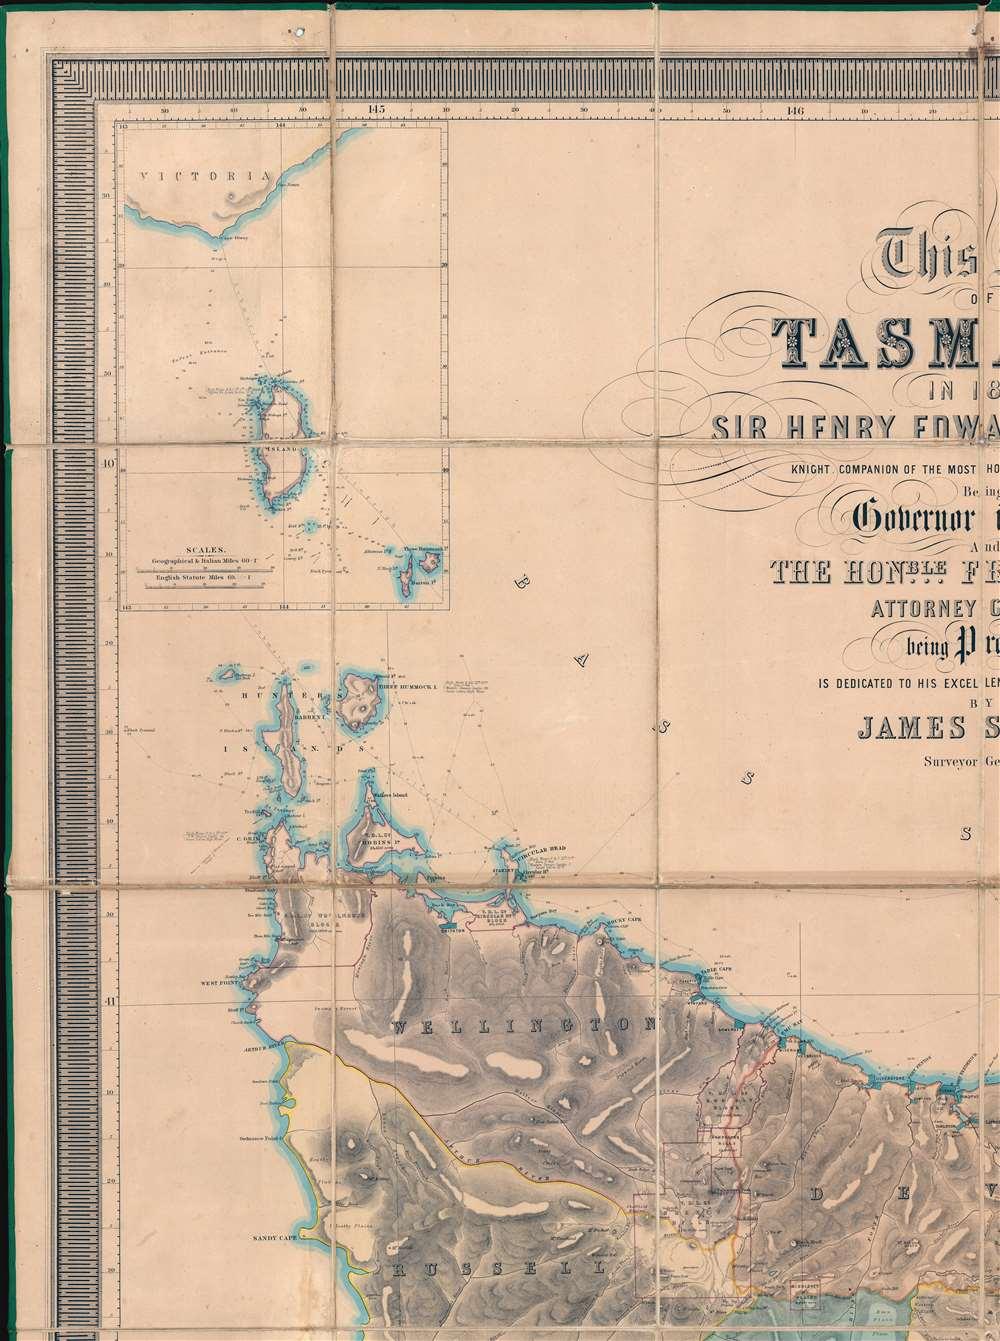 This Map of Tasmania in 1859, Sir Henry Edward Fox Young Knight Companion of the Most Honorable Order of the Bath Being Governor in Chief, and teh Honble. Francis Smigh Attorney General being Premier is dedicated to his Excellency and the Parliament by James Sprent, Surveyor General. - Alternate View 2